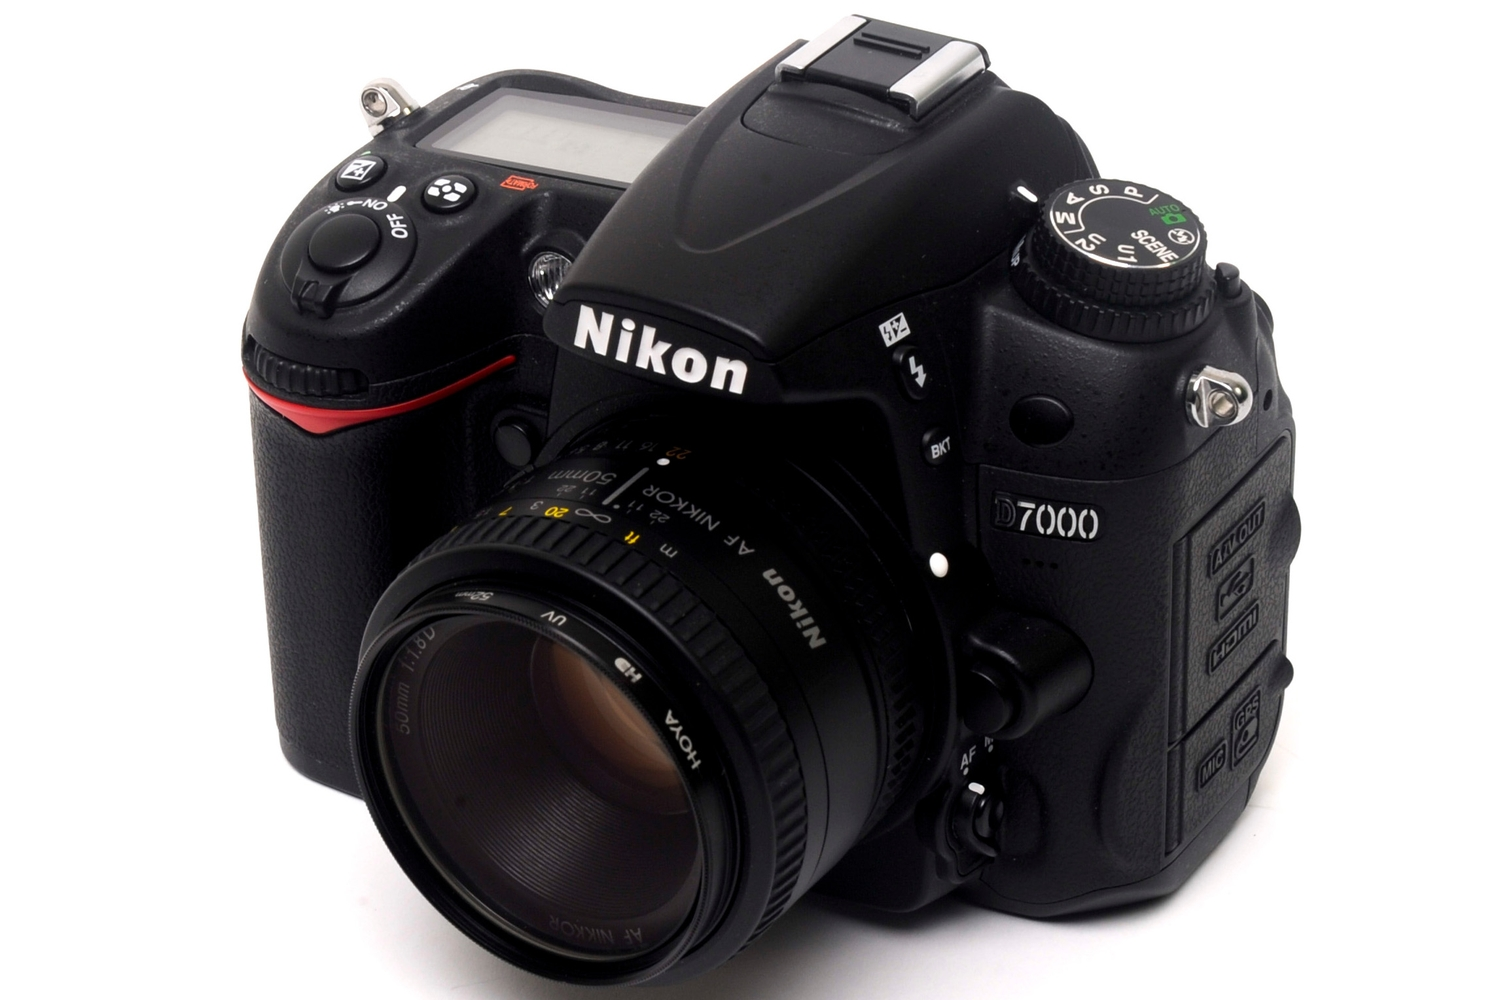 Nikon D7000 Review: Designed for photography enthusiasts this digital SLR camera offers excellent image quality under almost all conditions. - Digital Cameras -  Digital SLR Cameras - PC World Australia